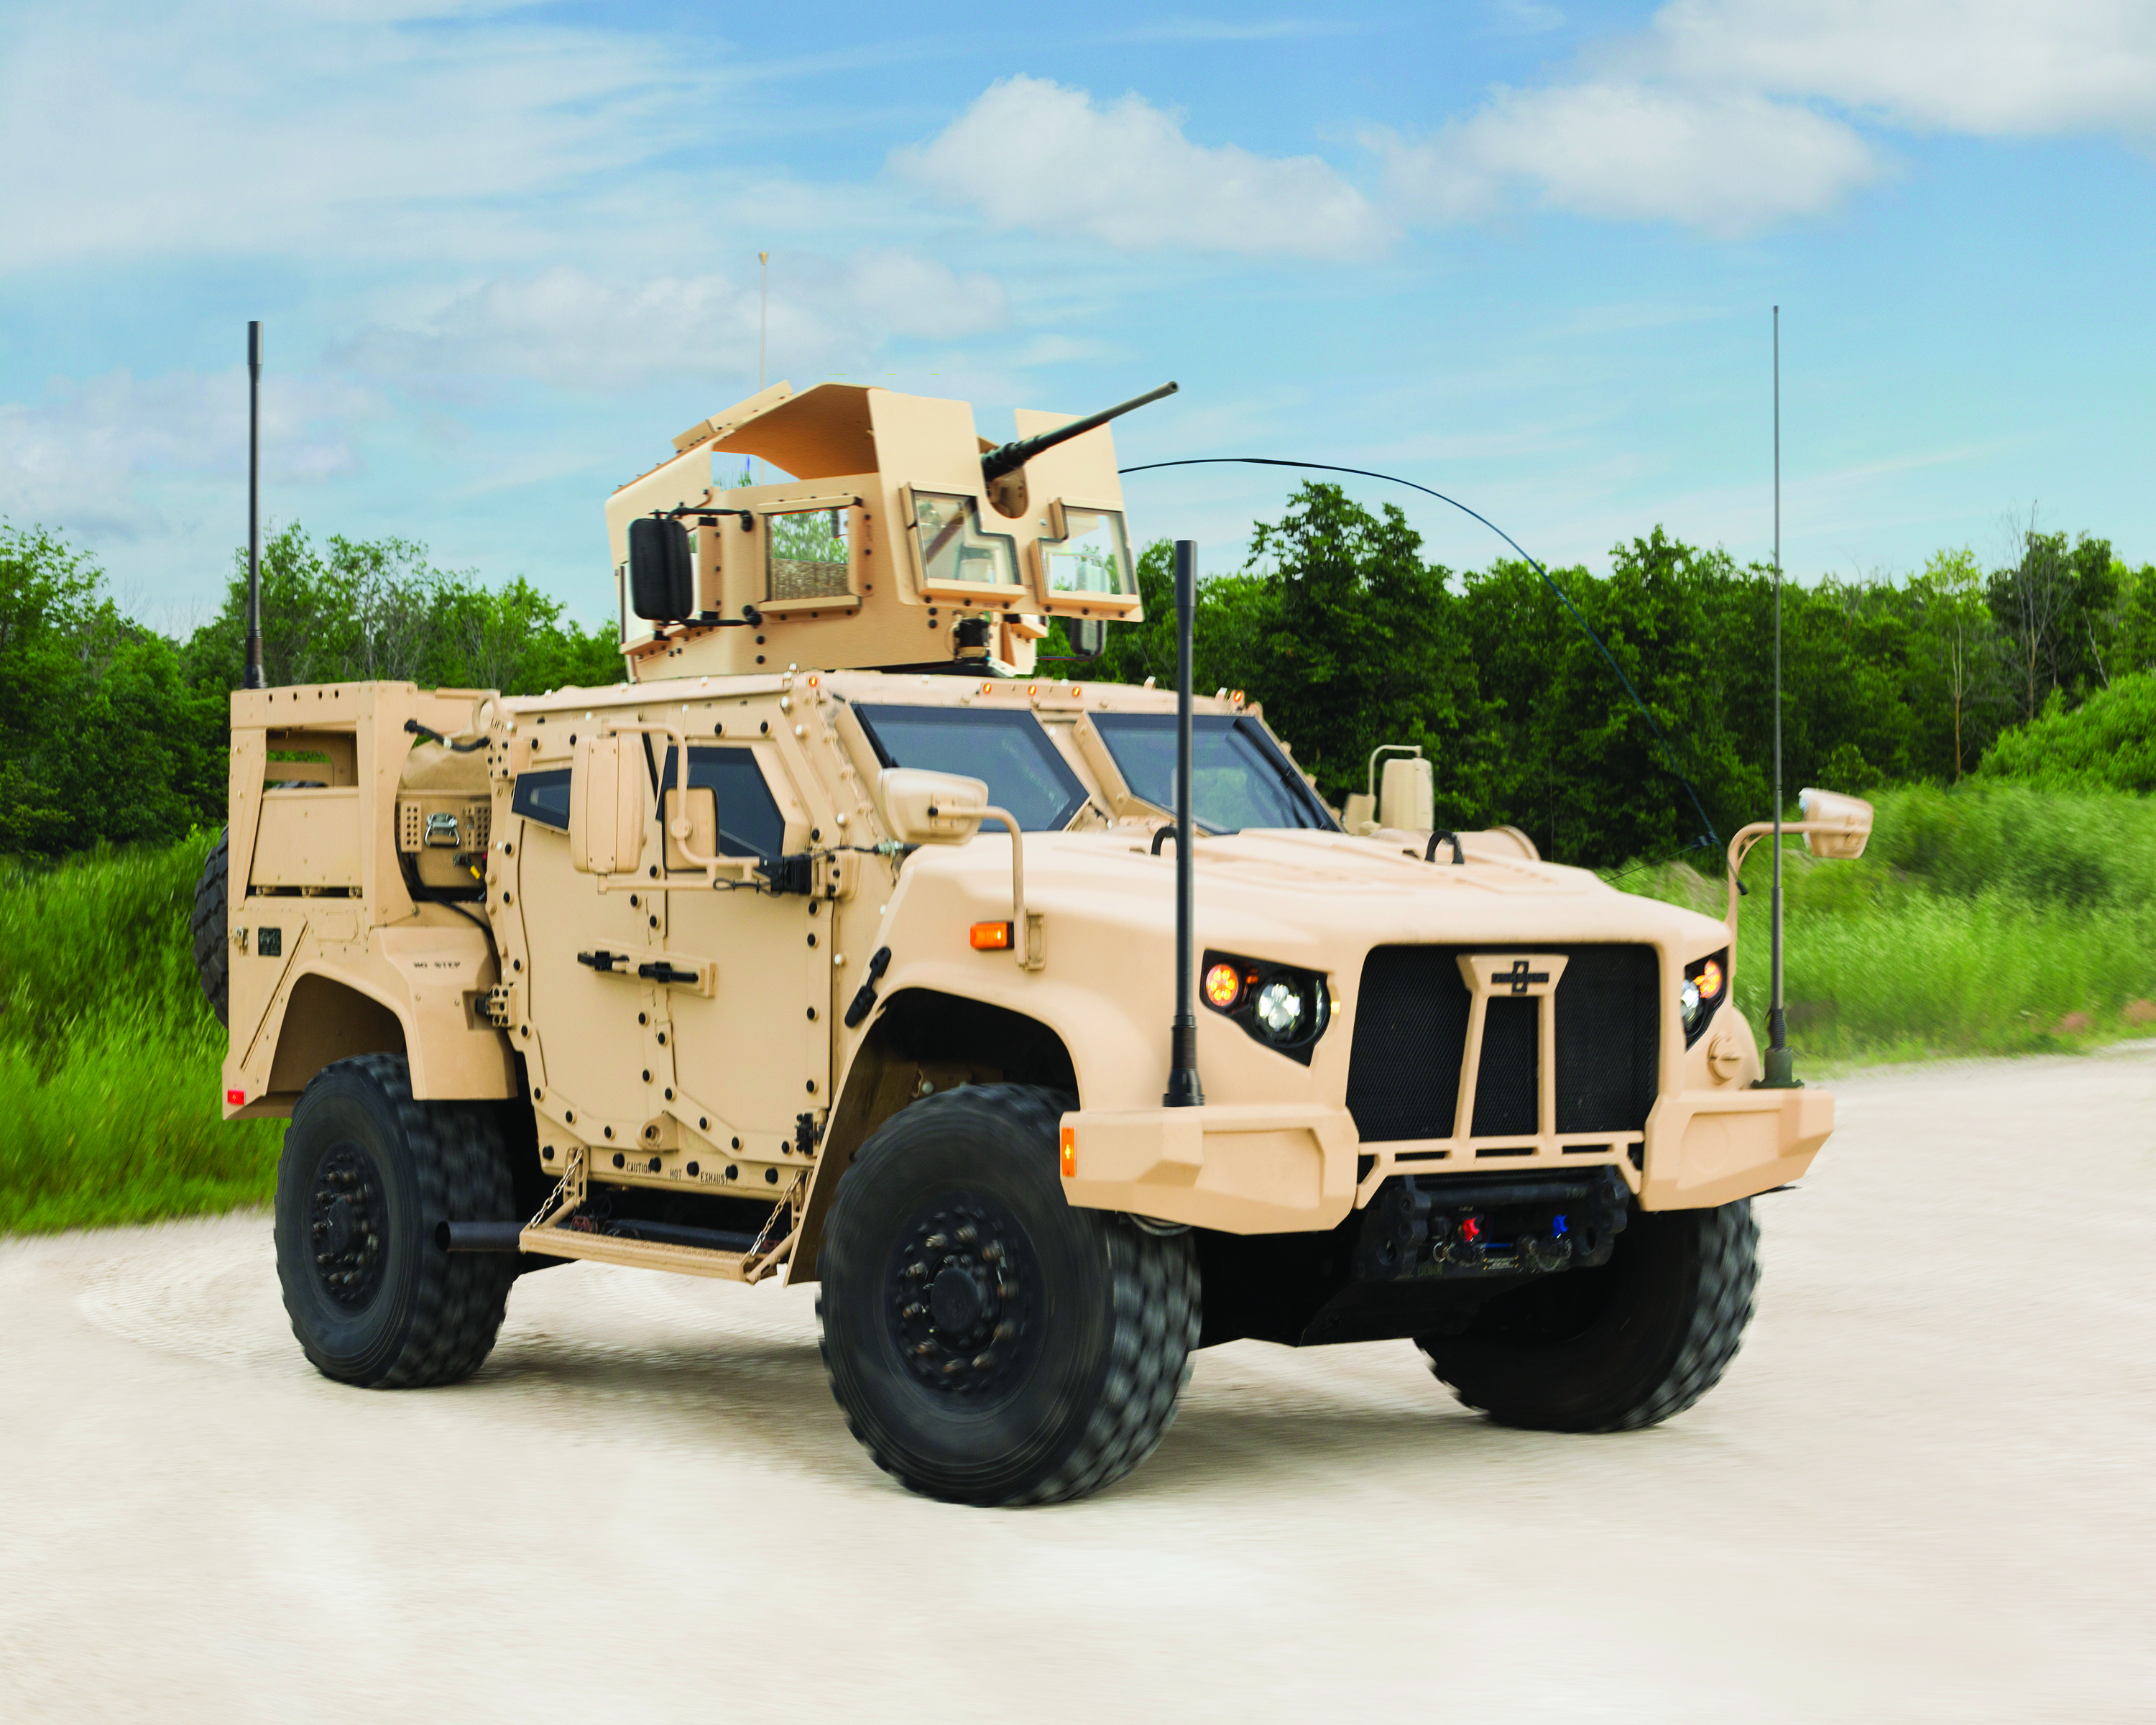 Joint Light Tactical Vehicle. Oshkosh Corp. is building a fleet of vehicles to replace the US military's aging collection of Humvees.